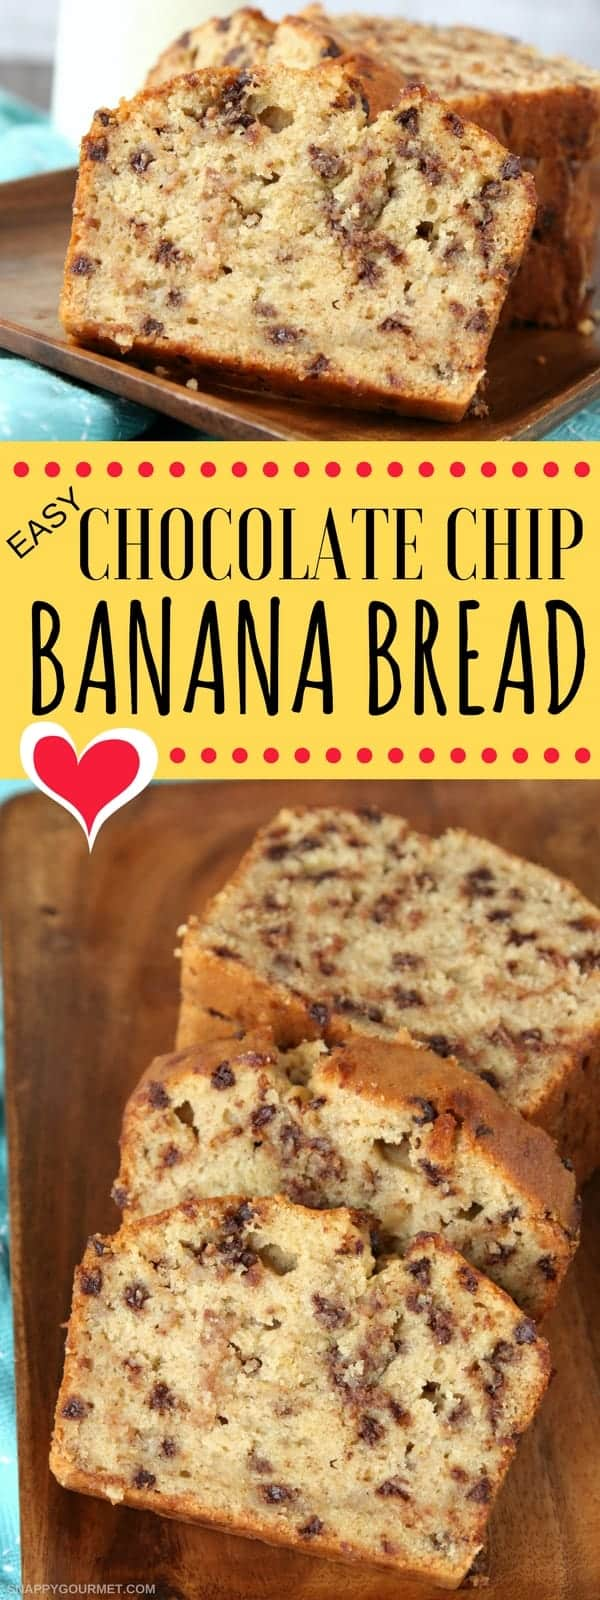 Easy Chocolate Chip Banana Bread Pin Collage